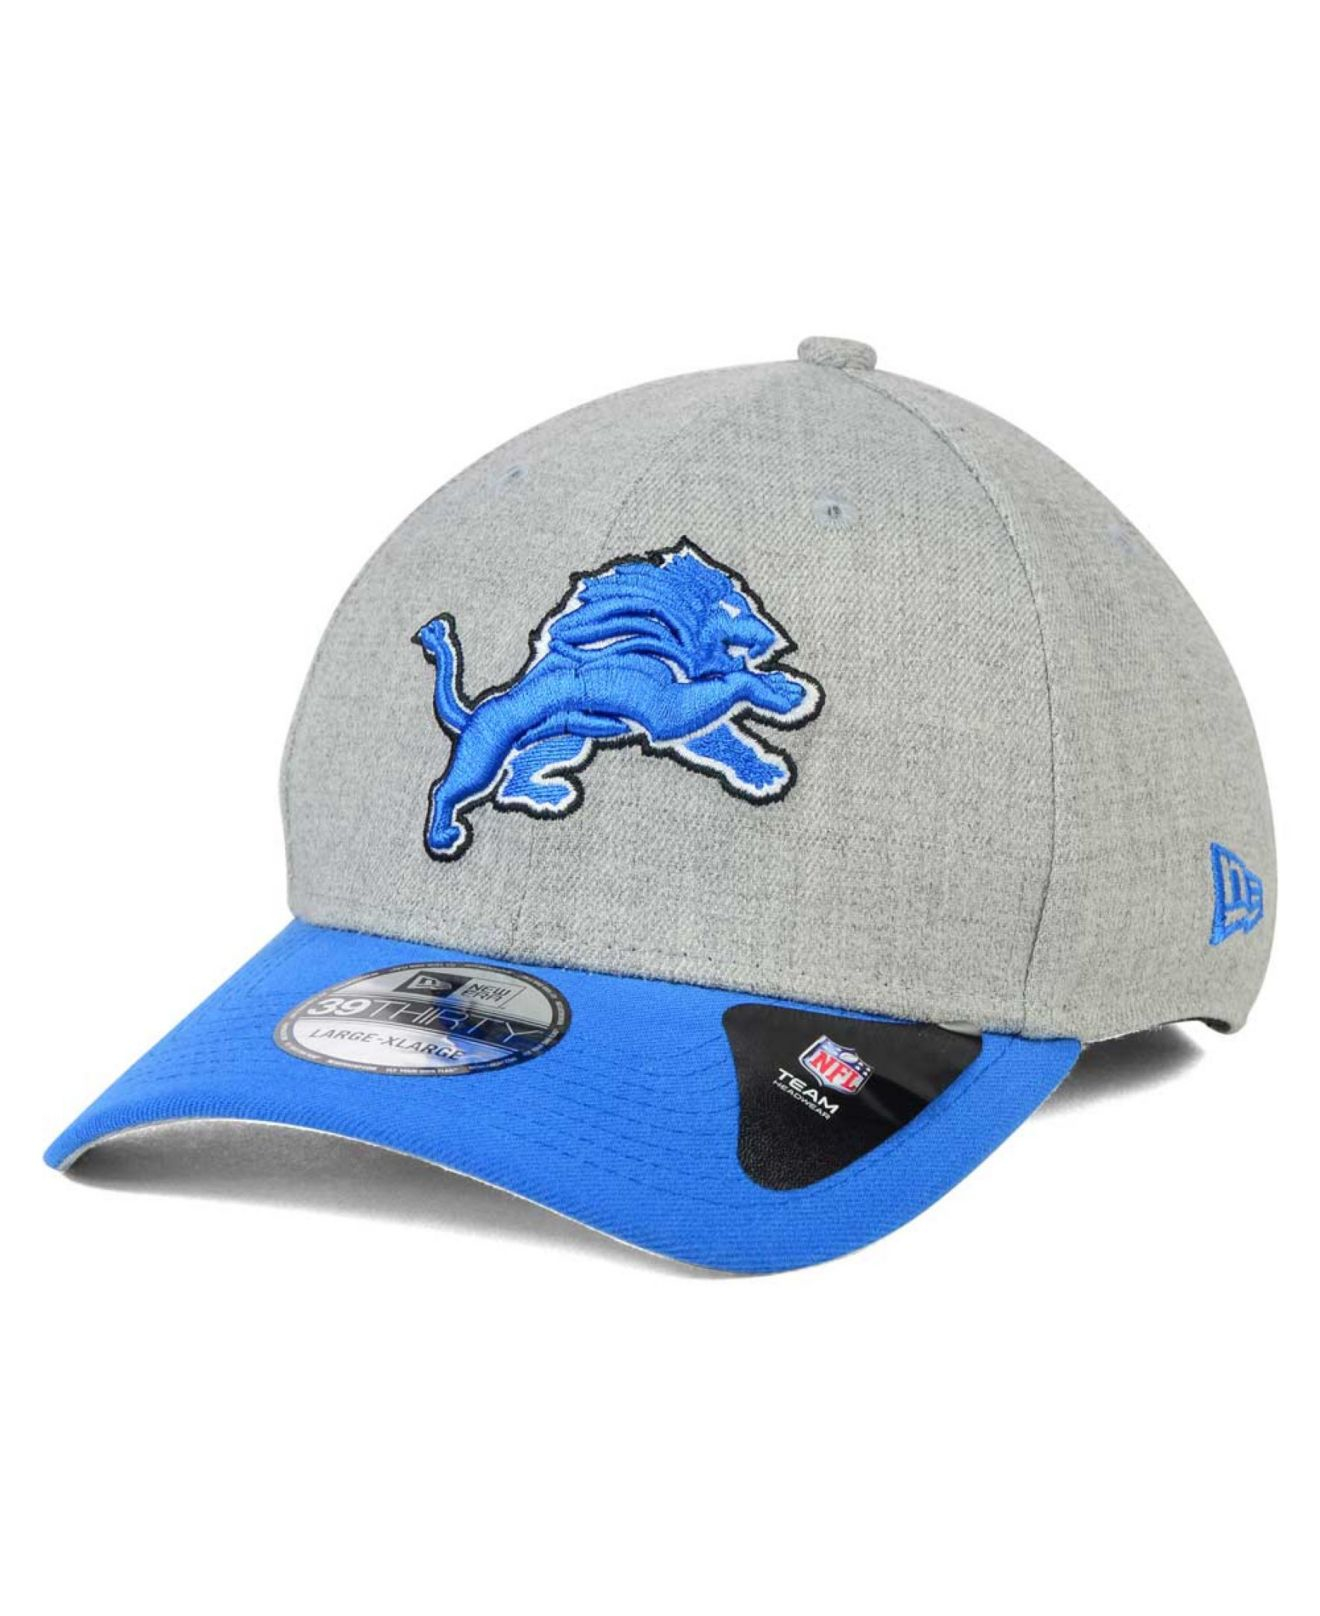 save off c948a dac60 ... my 1st 9fifty adjustable hat 51d1c 88dd3  official store lyst ktz  detroit lions change up heather 39thirty cap in blue for men 6adf2